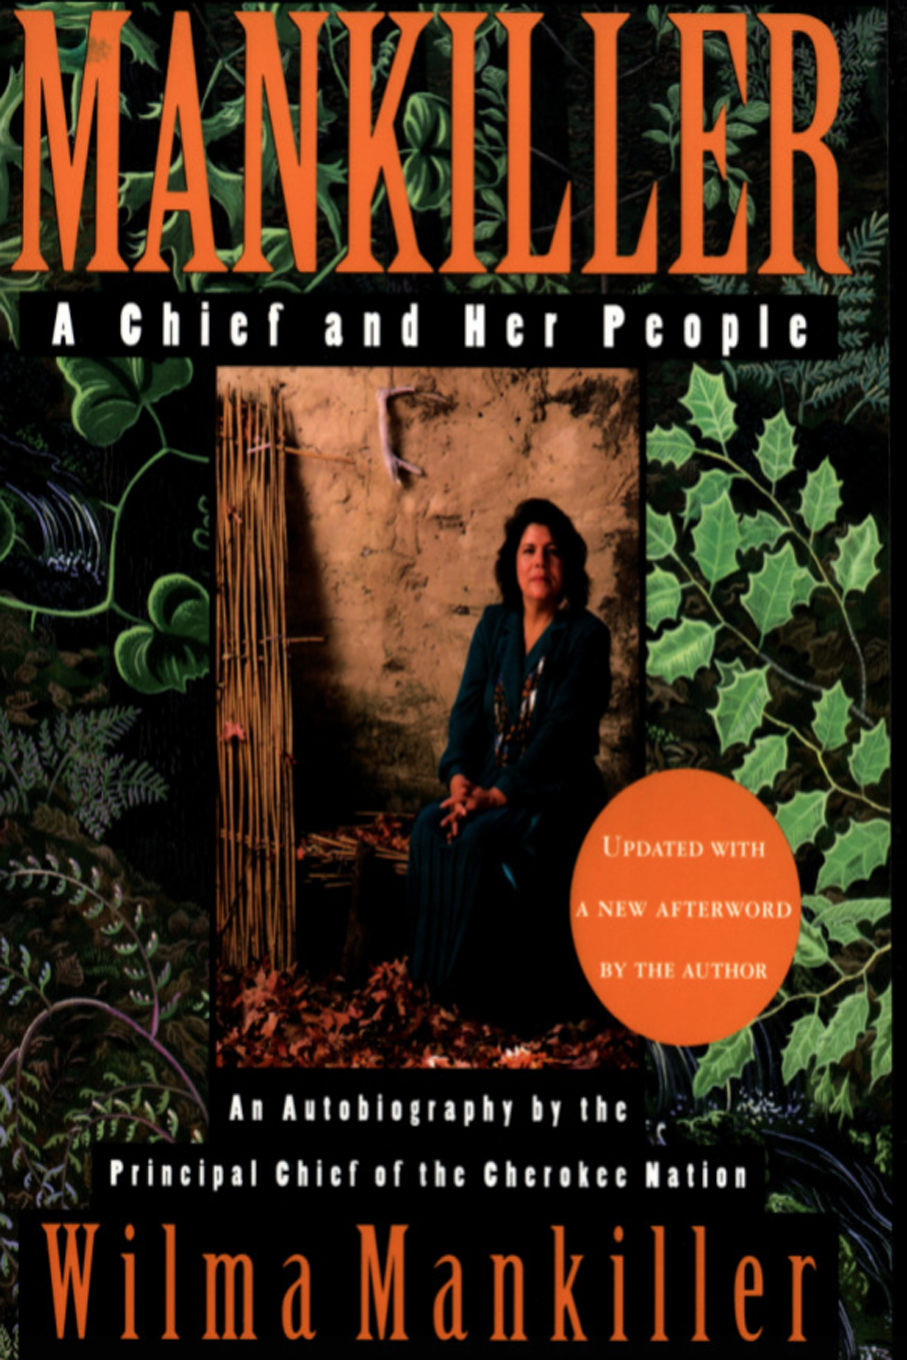 The book, Wilma Mankiller a Chief and her People